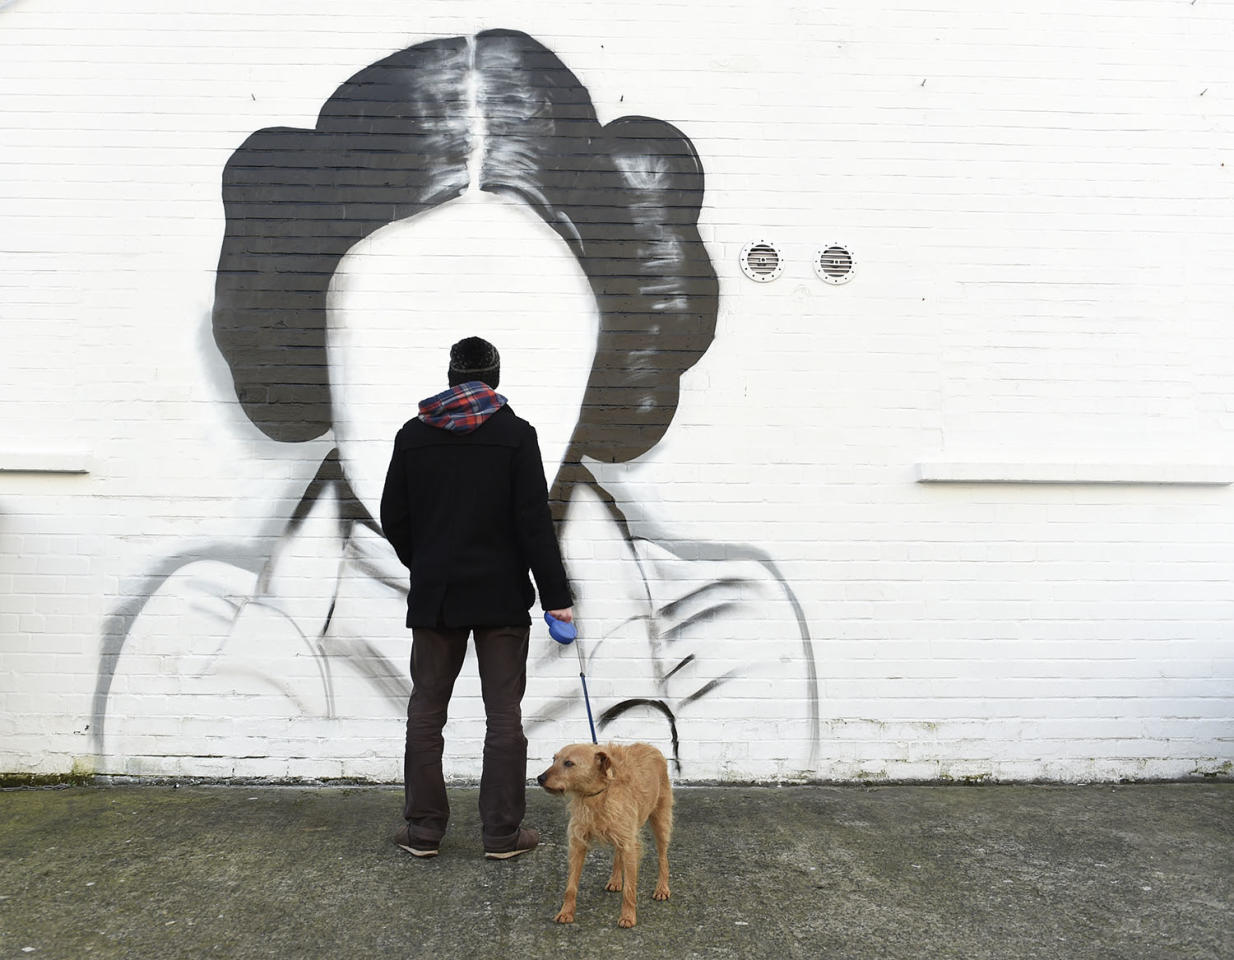 <p>A man and his dog stop to look at a mural depicting Princess Leia from <i>Star Wars</i>, played by Carrie Fisher, in Belfast, Northern Ireland, Jan. 11, 2017. (Photo: Clodagh Kilcoyne/Reuters) </p>